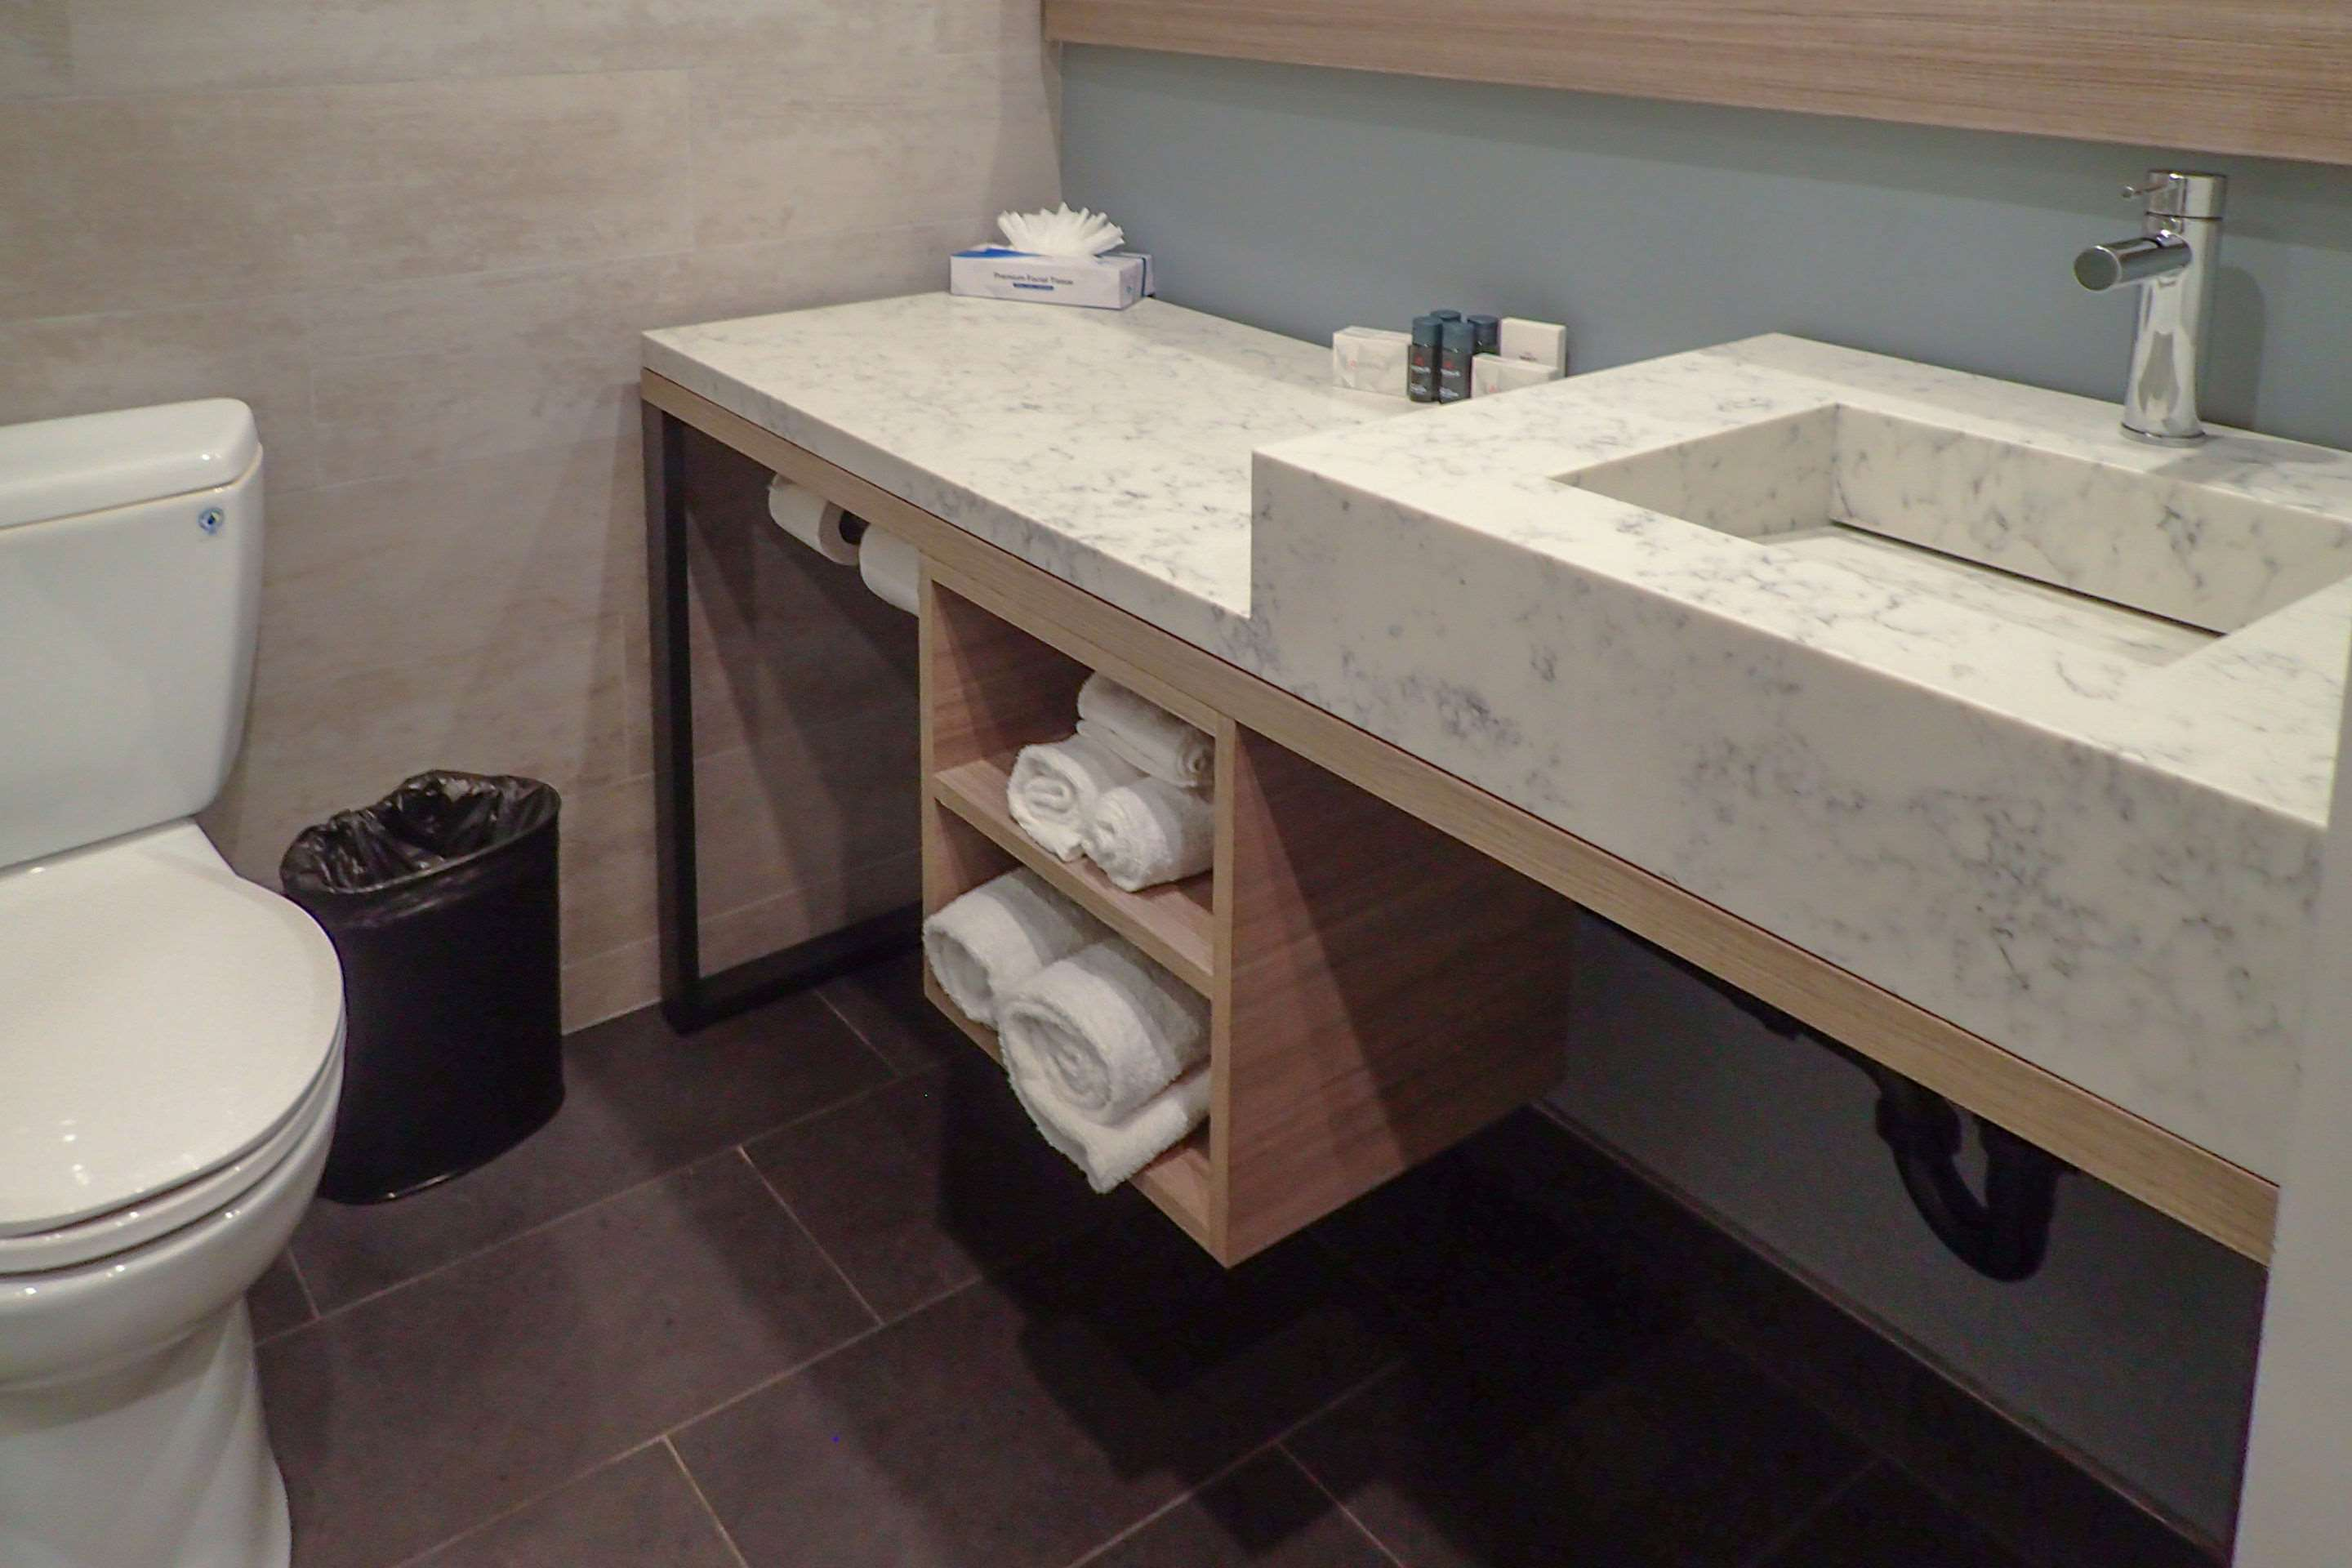 Avenue Hotel, Ascend Hotel Collection in Los Angeles, CA, photo #24